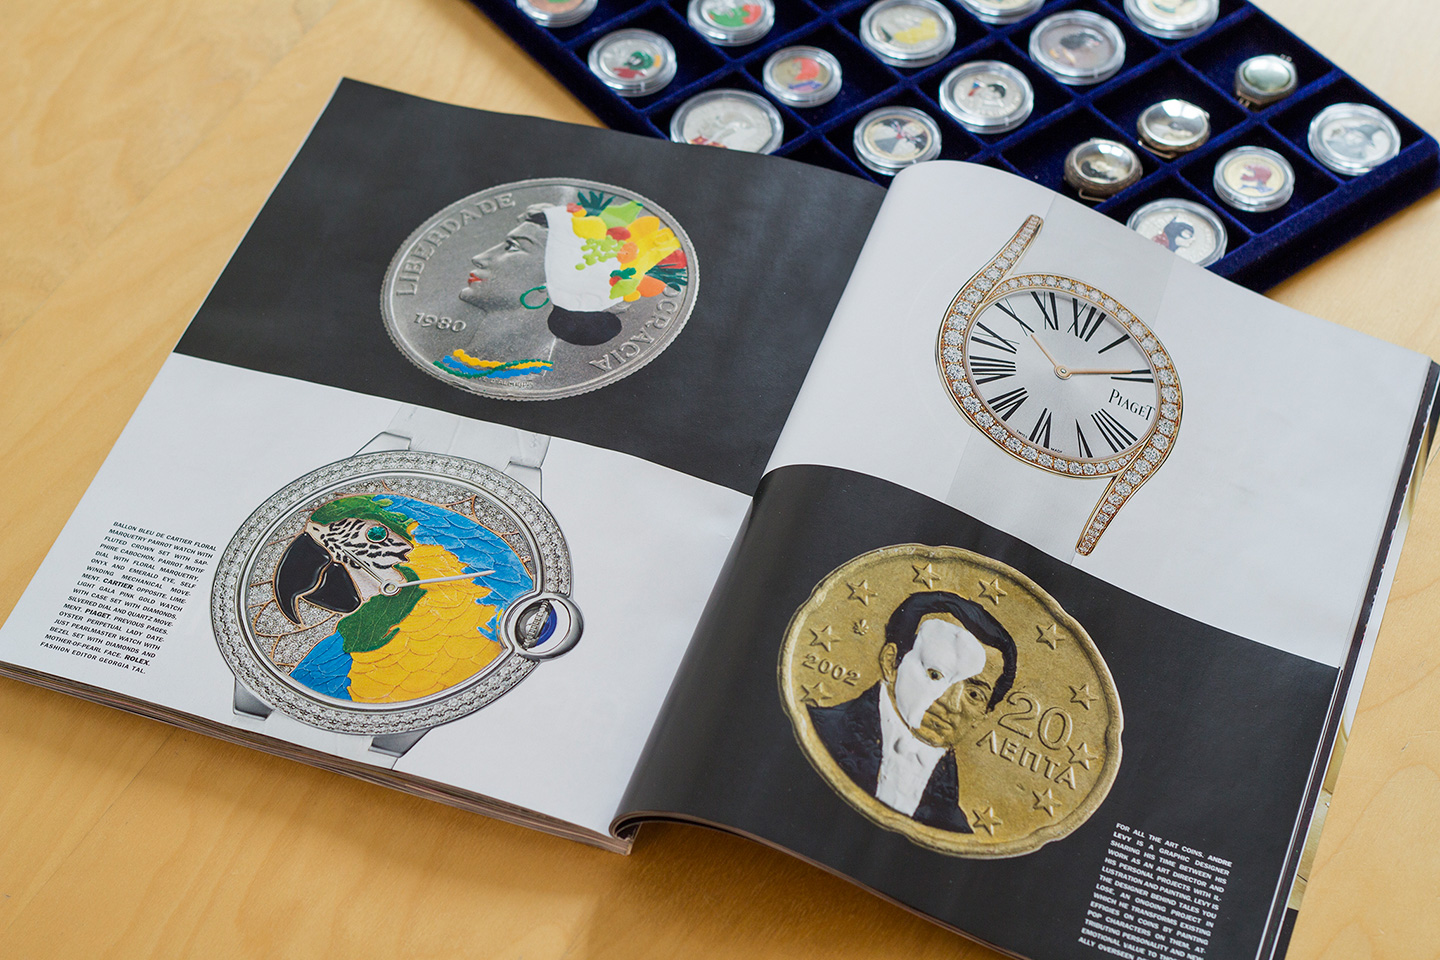 mixed_media_illustration_andre_levy_zhion_editorial_coins_vogue_gioiello_italia_art_watch_talesyoulose_03.jpg